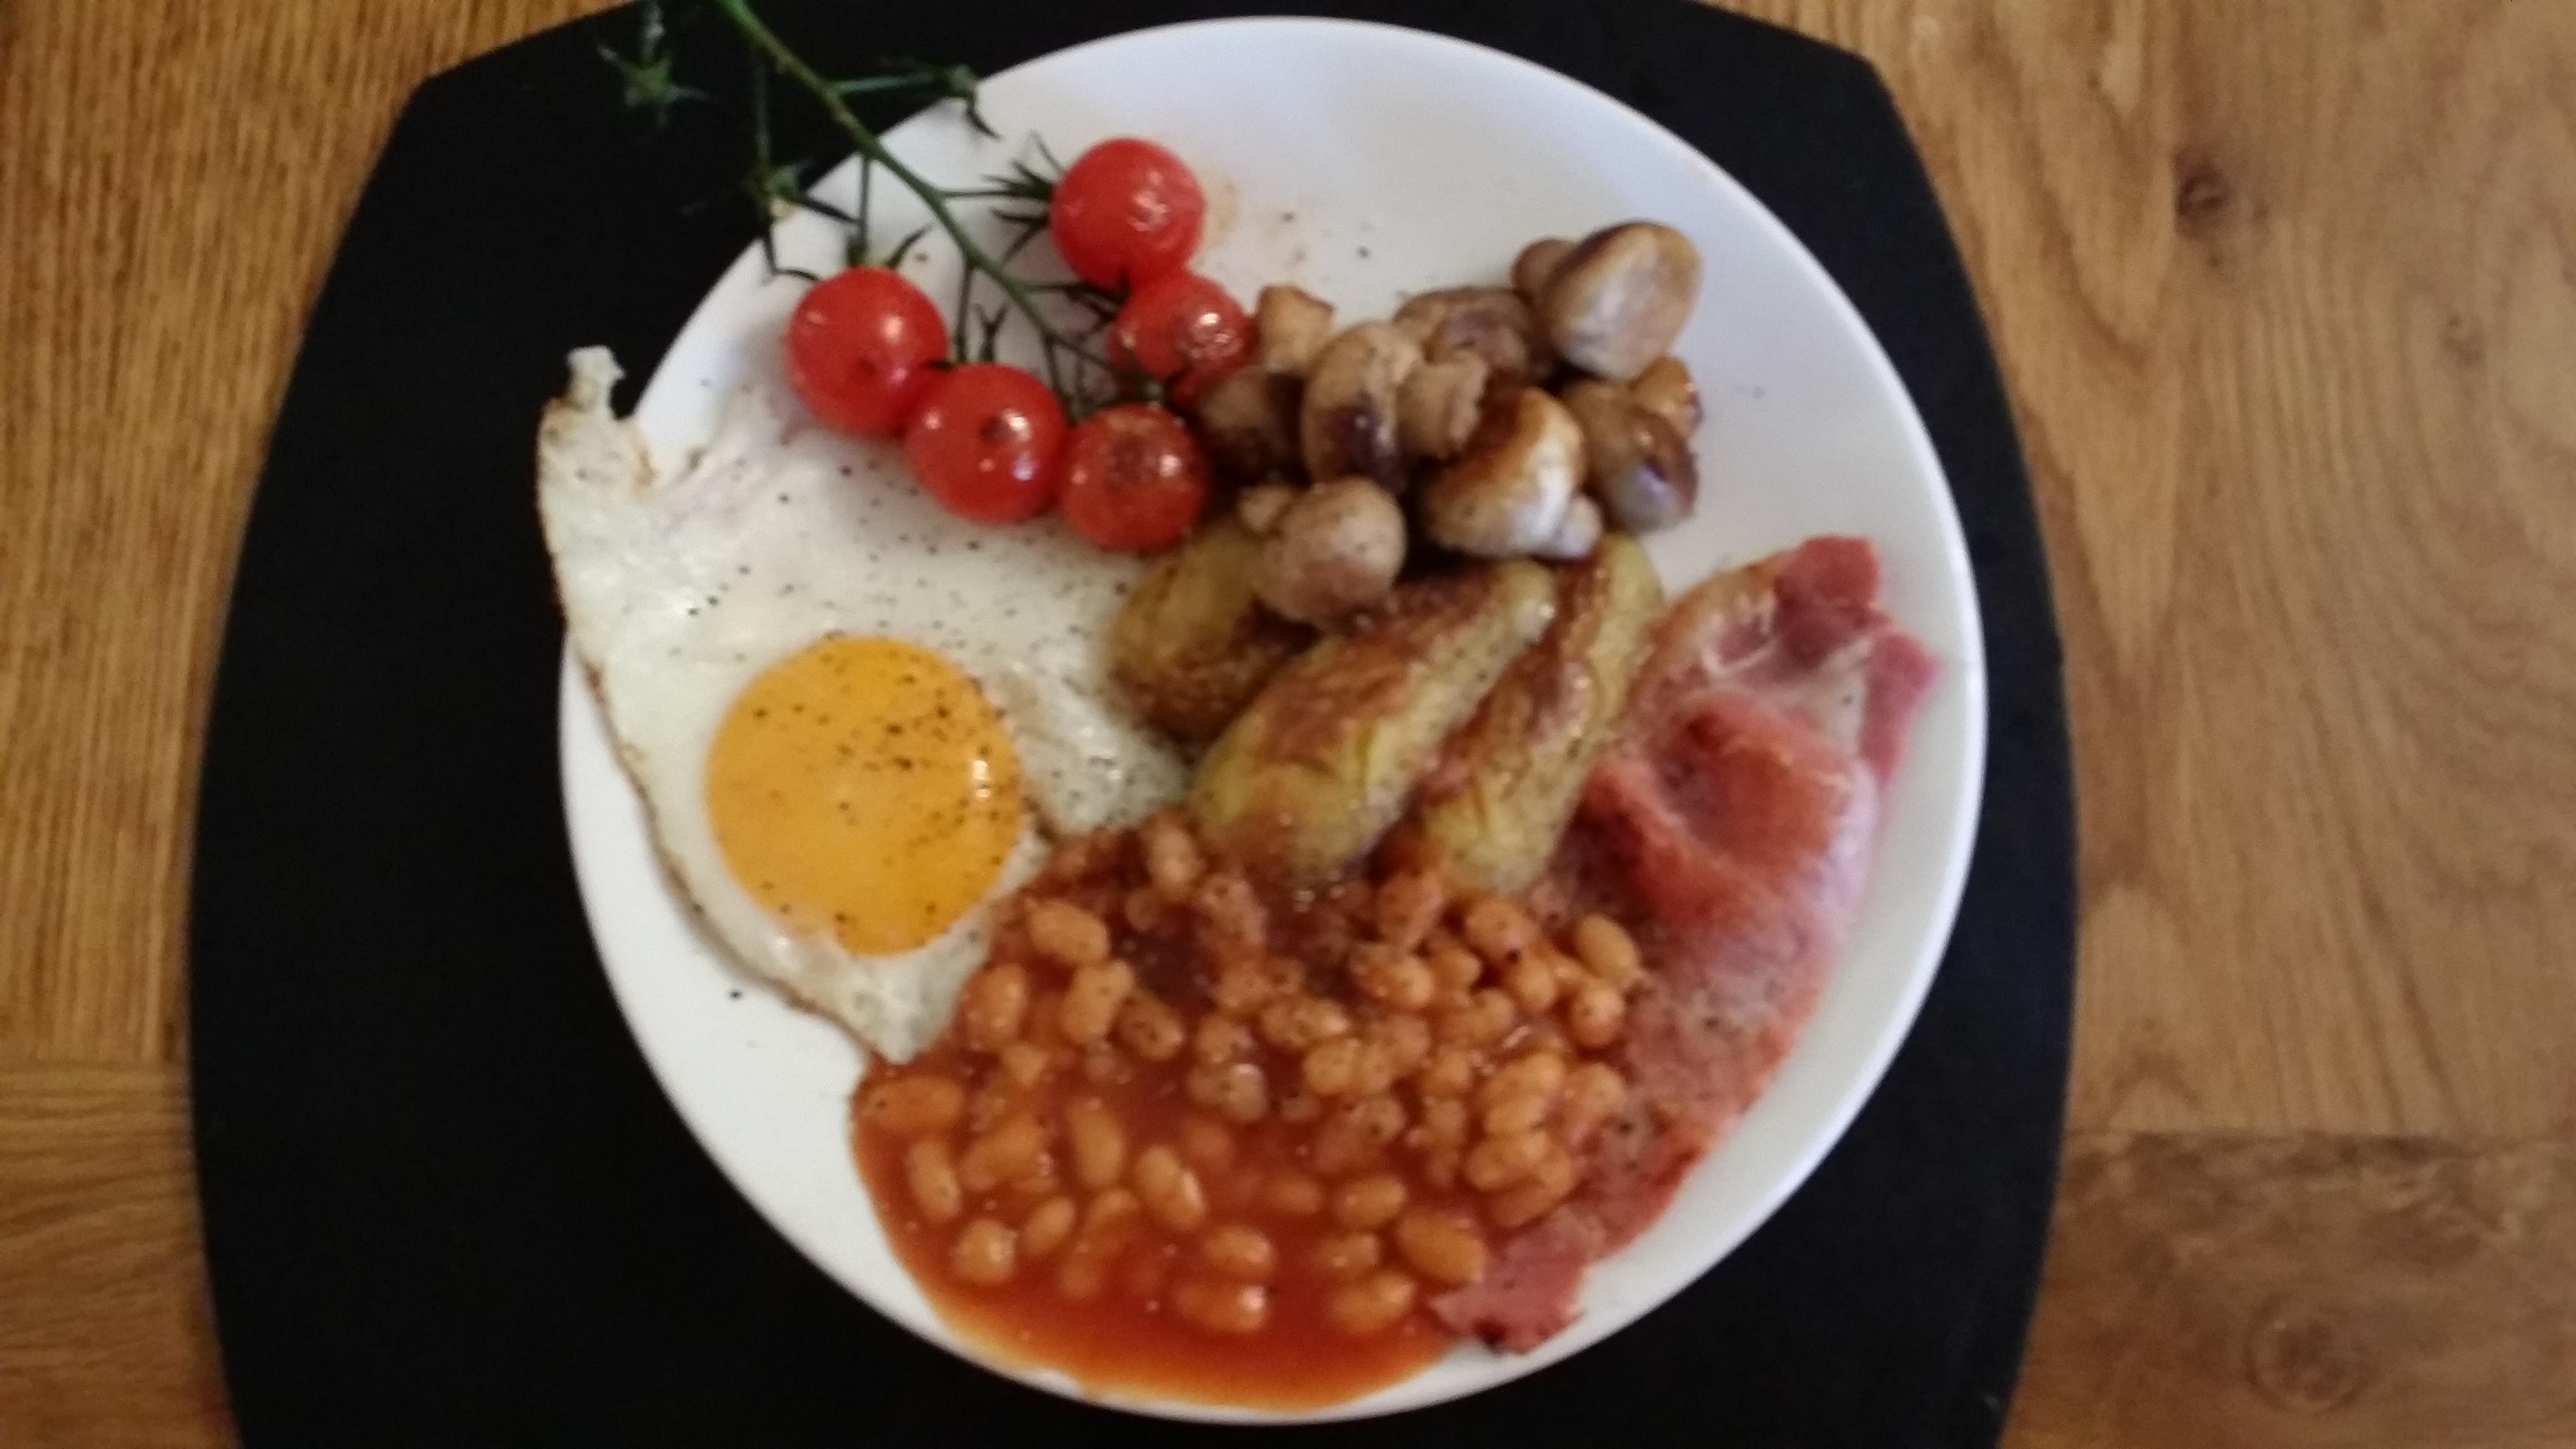 My Food Diary on the Countdown to 50-20140810_082347.jpg